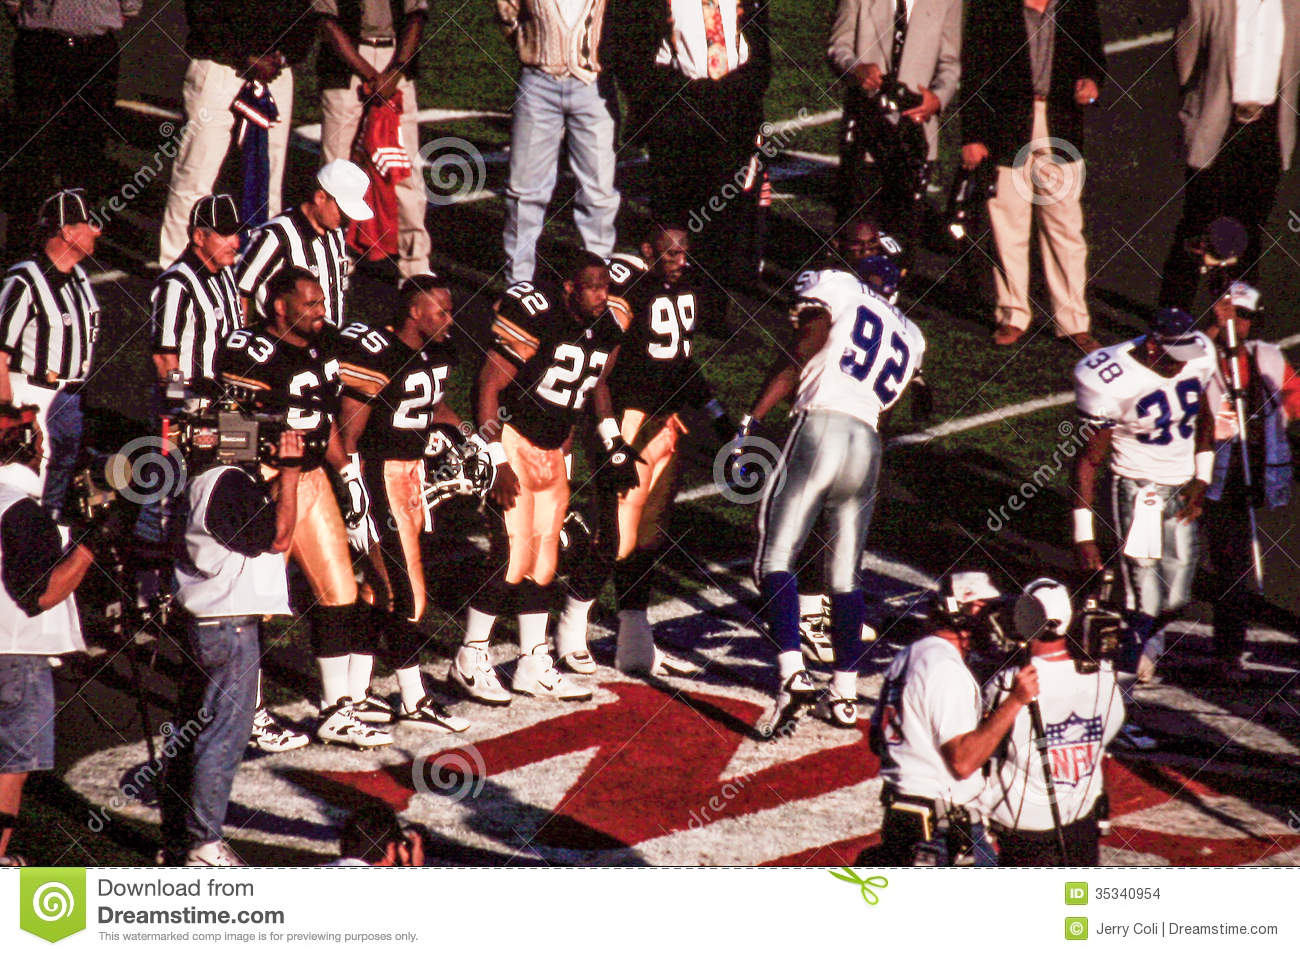 Super Bowl XXXIV: Duel in the Dome - NFL Videos